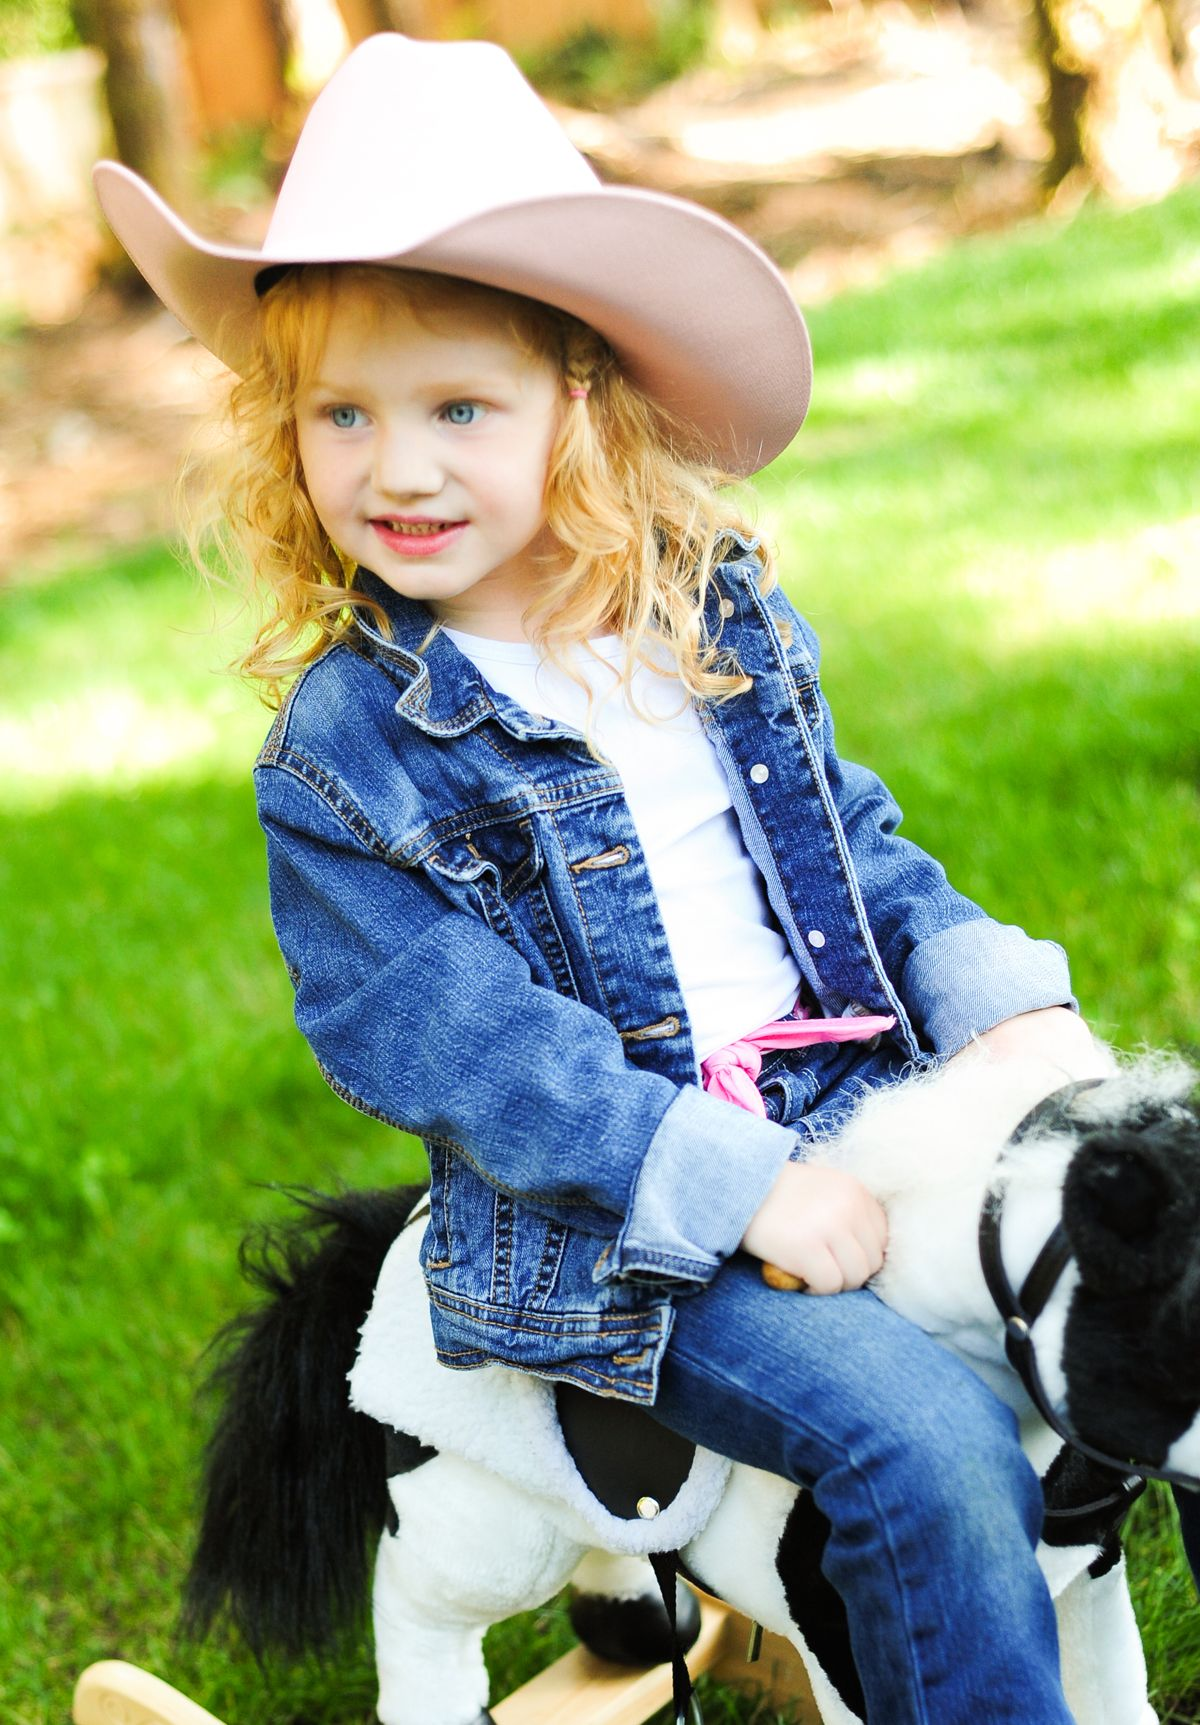 Katie Rose's Cowgirl pictures from September 2013